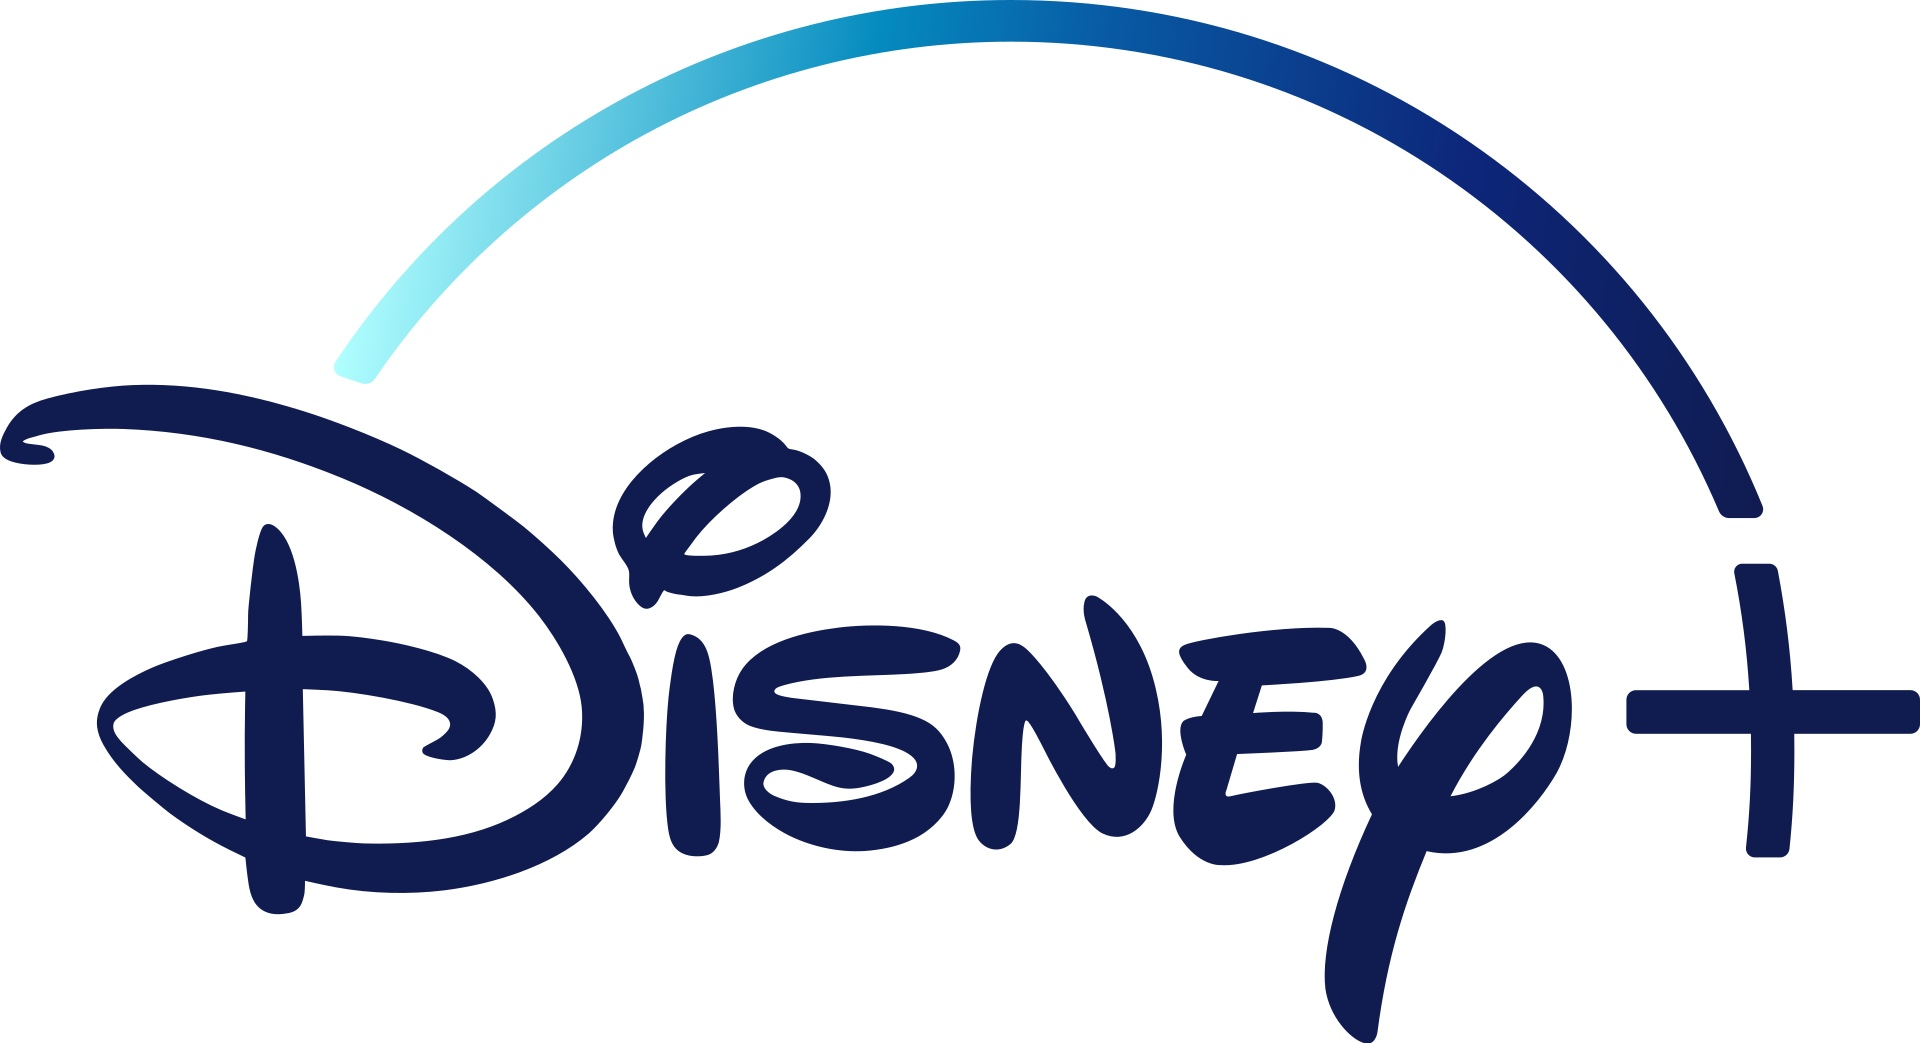 Save over 20% on your annual (€ 69.99) or monthly (€ 6.99) Disney + subscription before February 23.